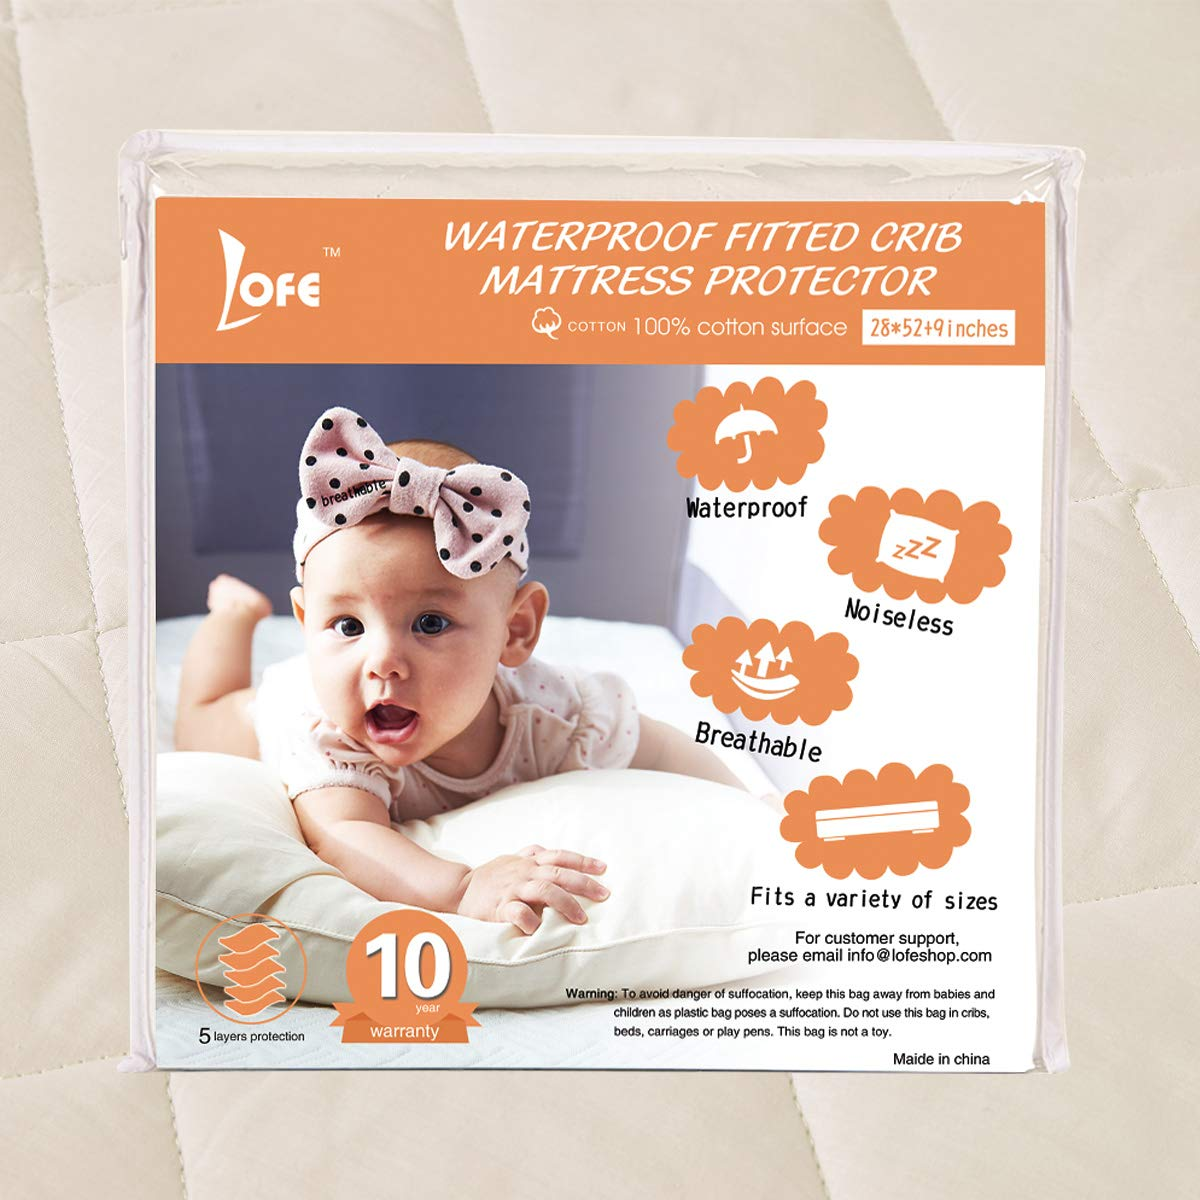 Lofe Organic Cotton Fitted Crib Mattress Protector Waterproof - Infant Breathable Crib Mattress Pad - Toddler Baby Crib Mattress Cover by Lofe